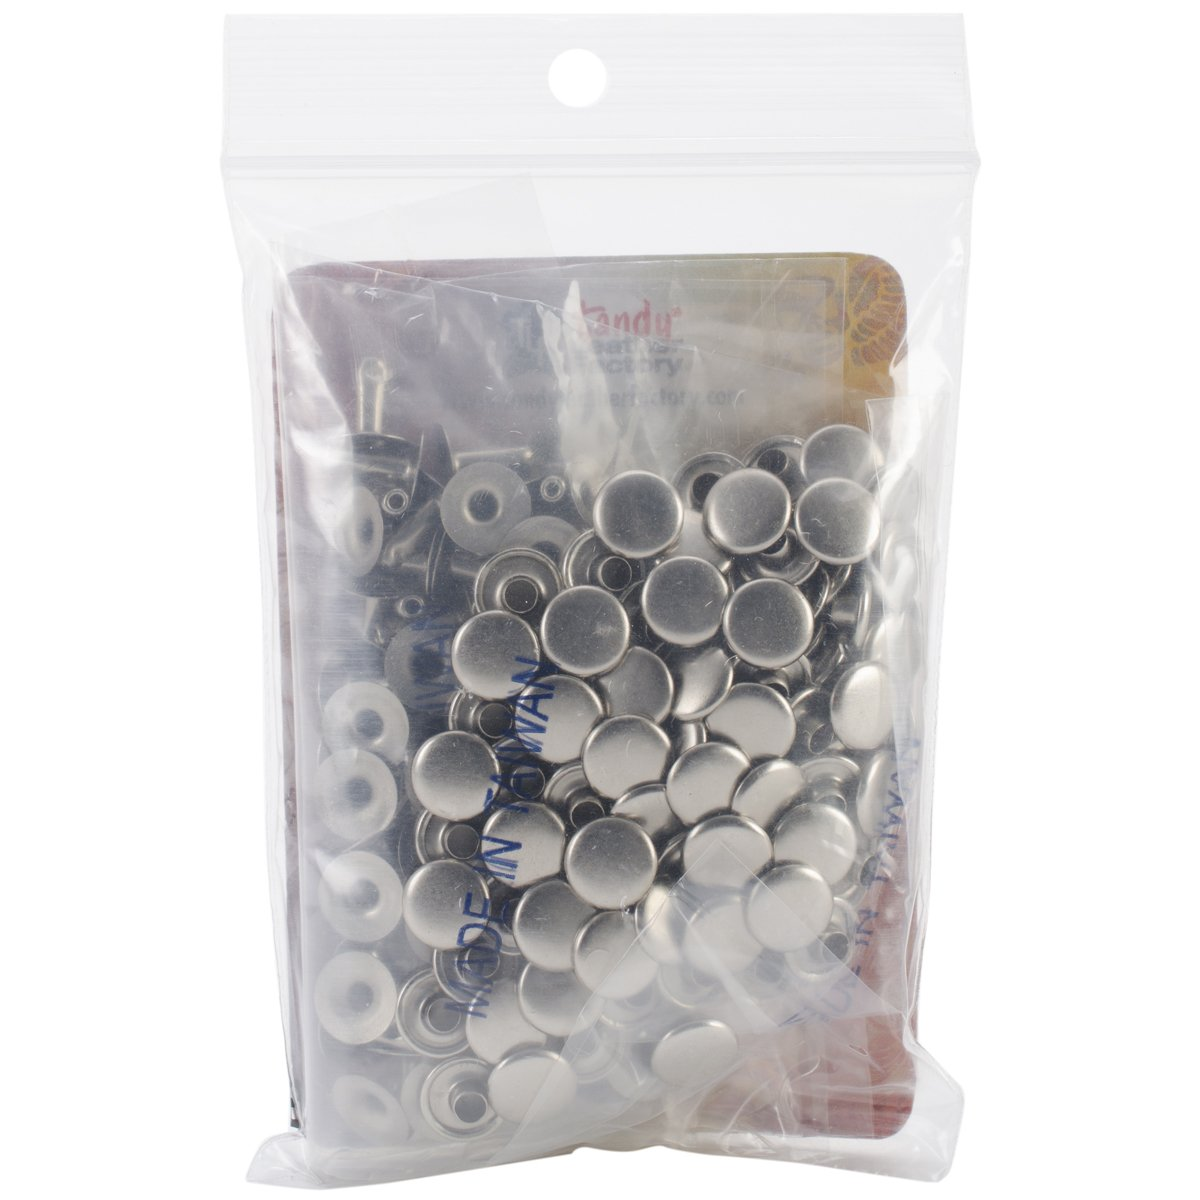 Tandy Leather Factory 1273-12 Rapid Rivets Nickel Plated, Medium